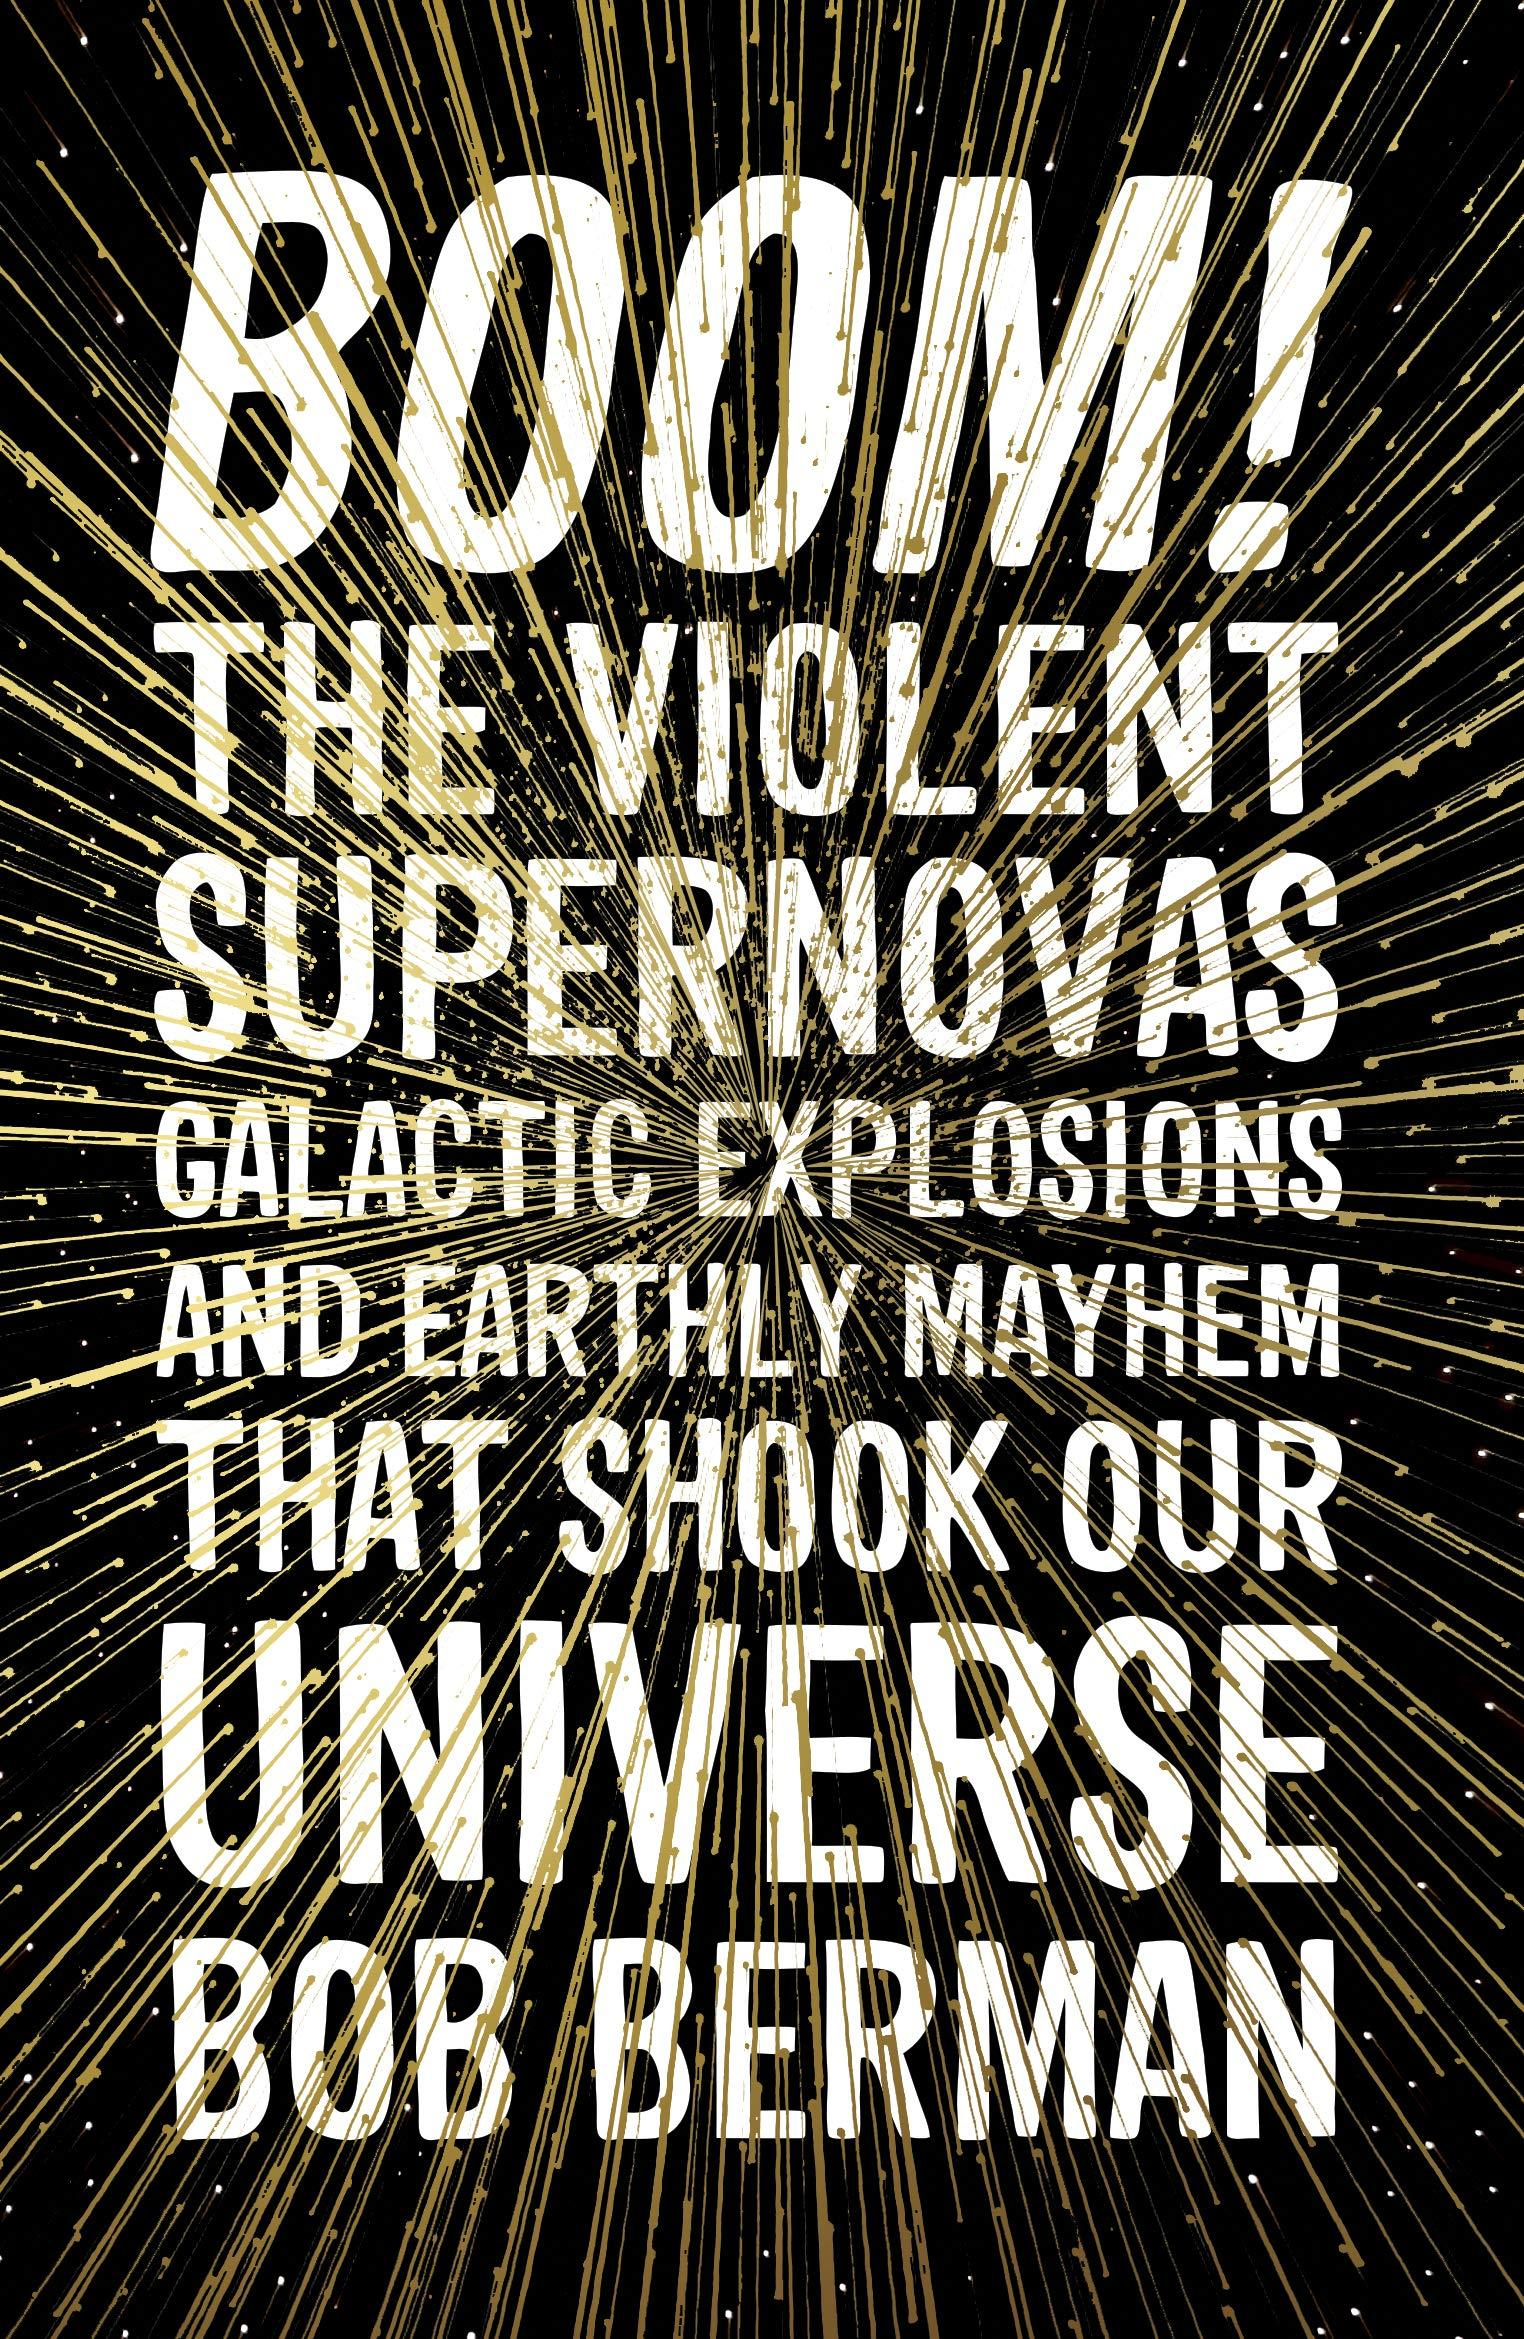 Boom!: The Violent Supernovas, Galactic Explosions, and Earthly Mayhem that Shook our Universe by Bob Berman